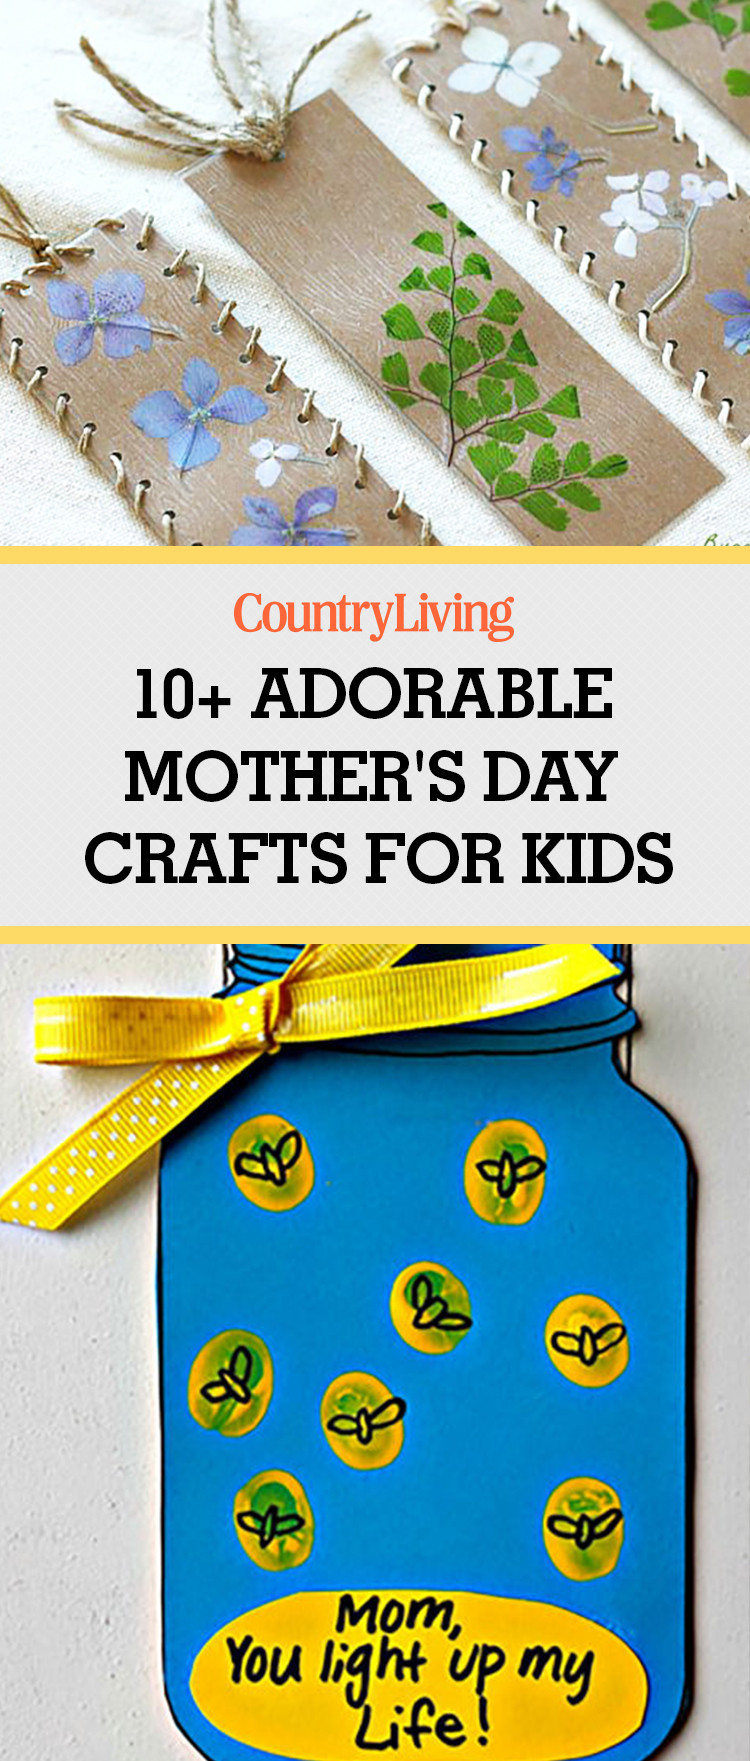 Best ideas about Father'S Day Craft Ideas For Preschoolers . Save or Pin 10 Cute Mother s Day Crafts for Kids Preschool Mothers Now.